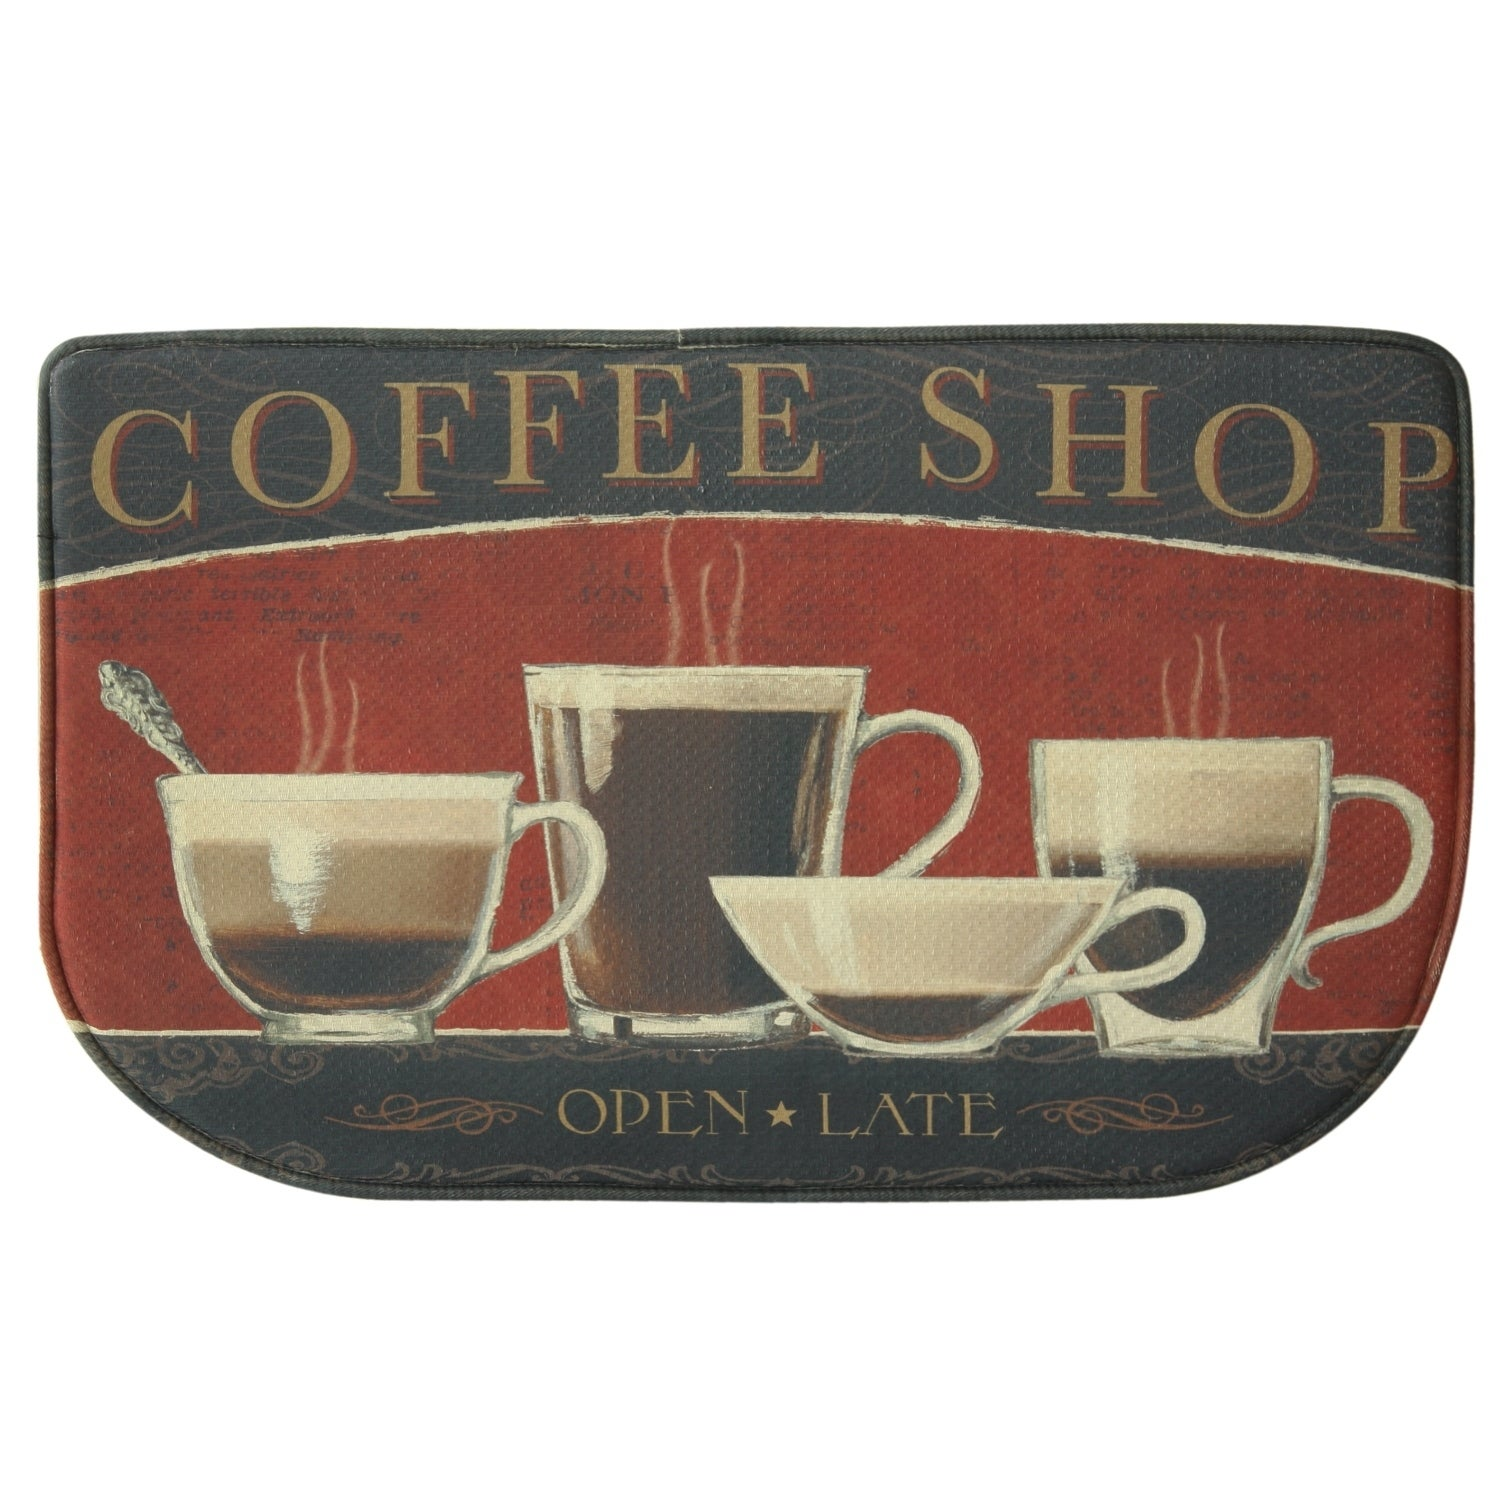 Printed Memory Foam Coffee Shop Kitchen Rug By Bacova Black Red 1 6 X 2 6